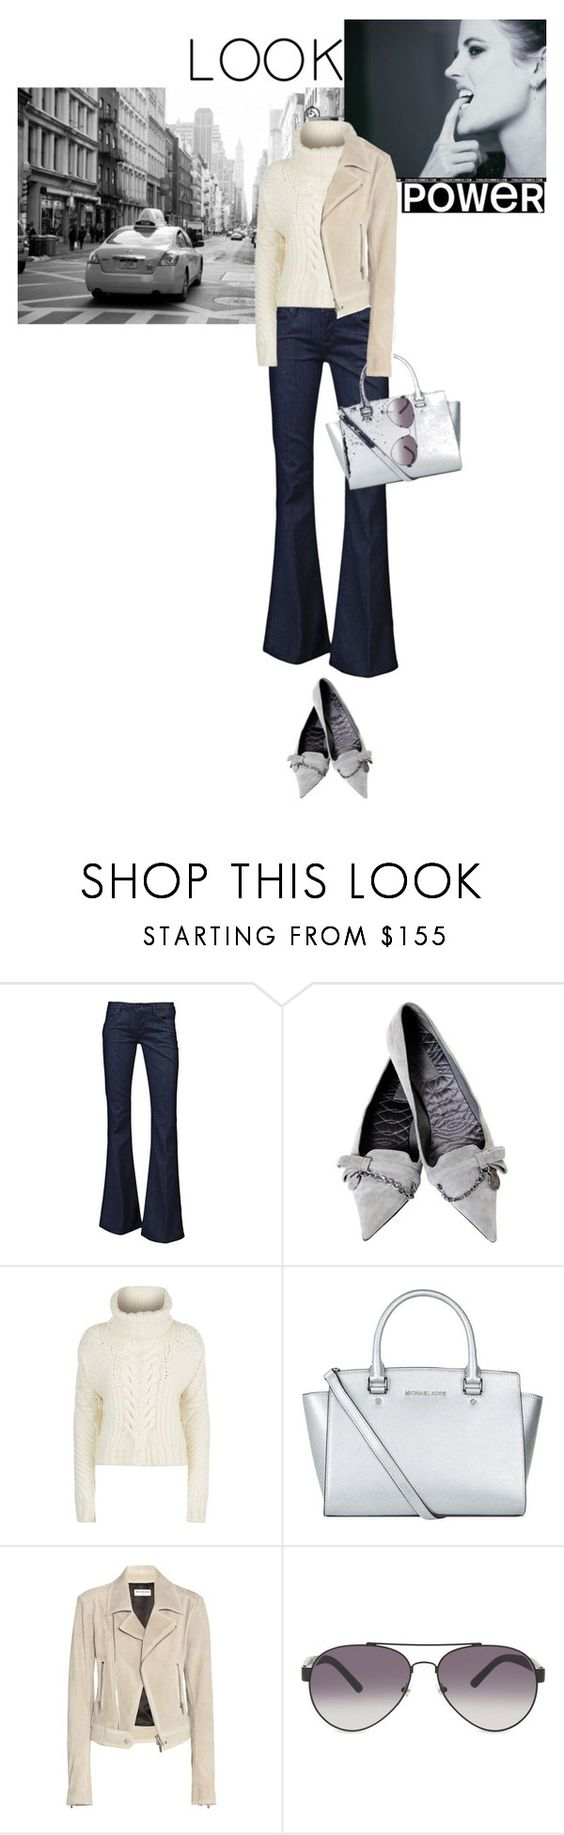 """Power By Comfort"" by paperdollsq ❤ liked on Polyvore featuring Hudson Jeans, Gucci, Tommy Hilfiger, MICHAEL Michael Kors, Balenciaga, Burberry and powerlook"